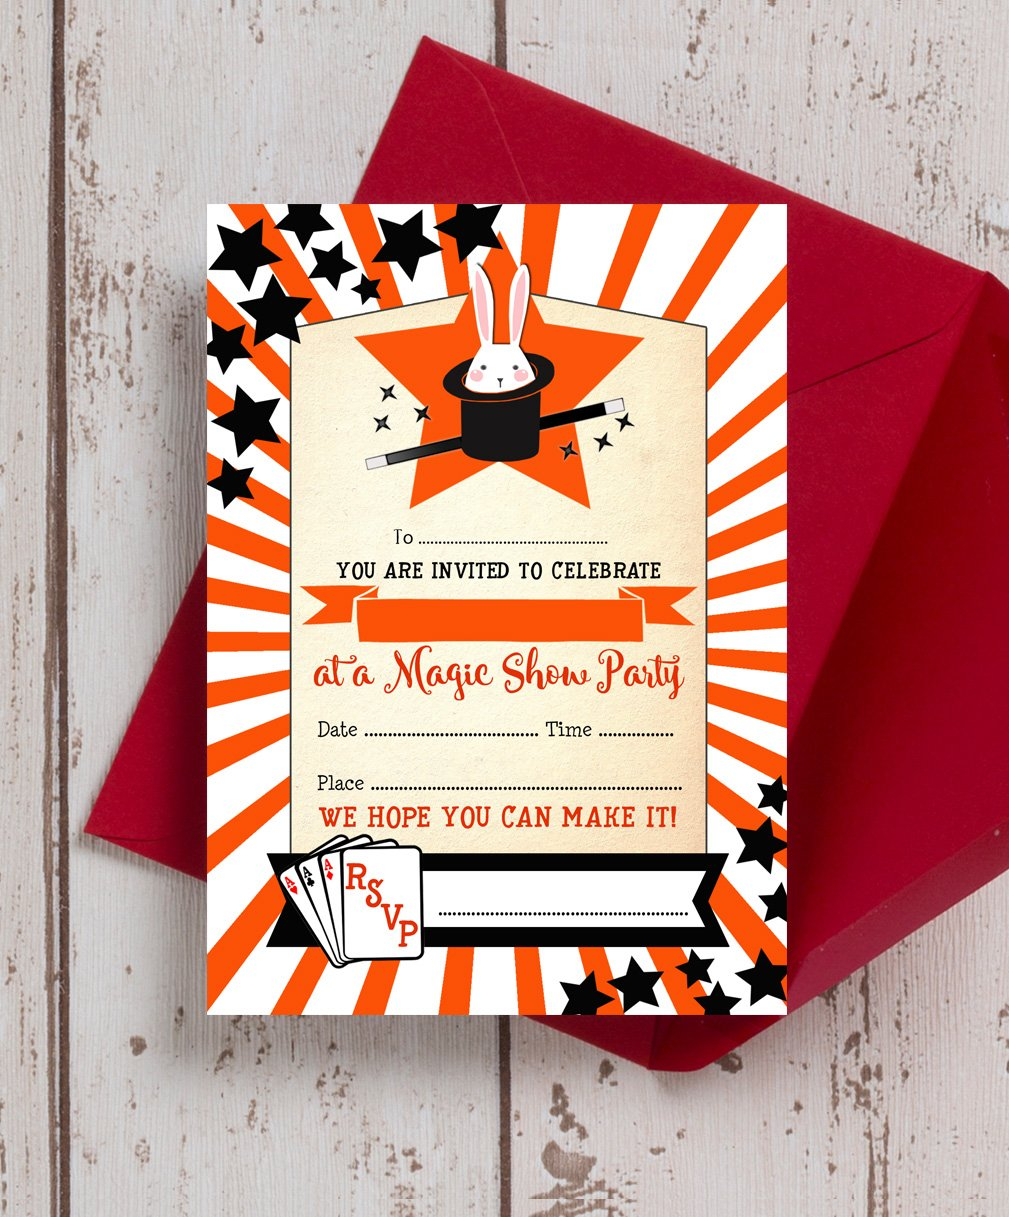 Pack of 10 Magic Show Party Themed Party Invitations: Amazon.co.uk ...